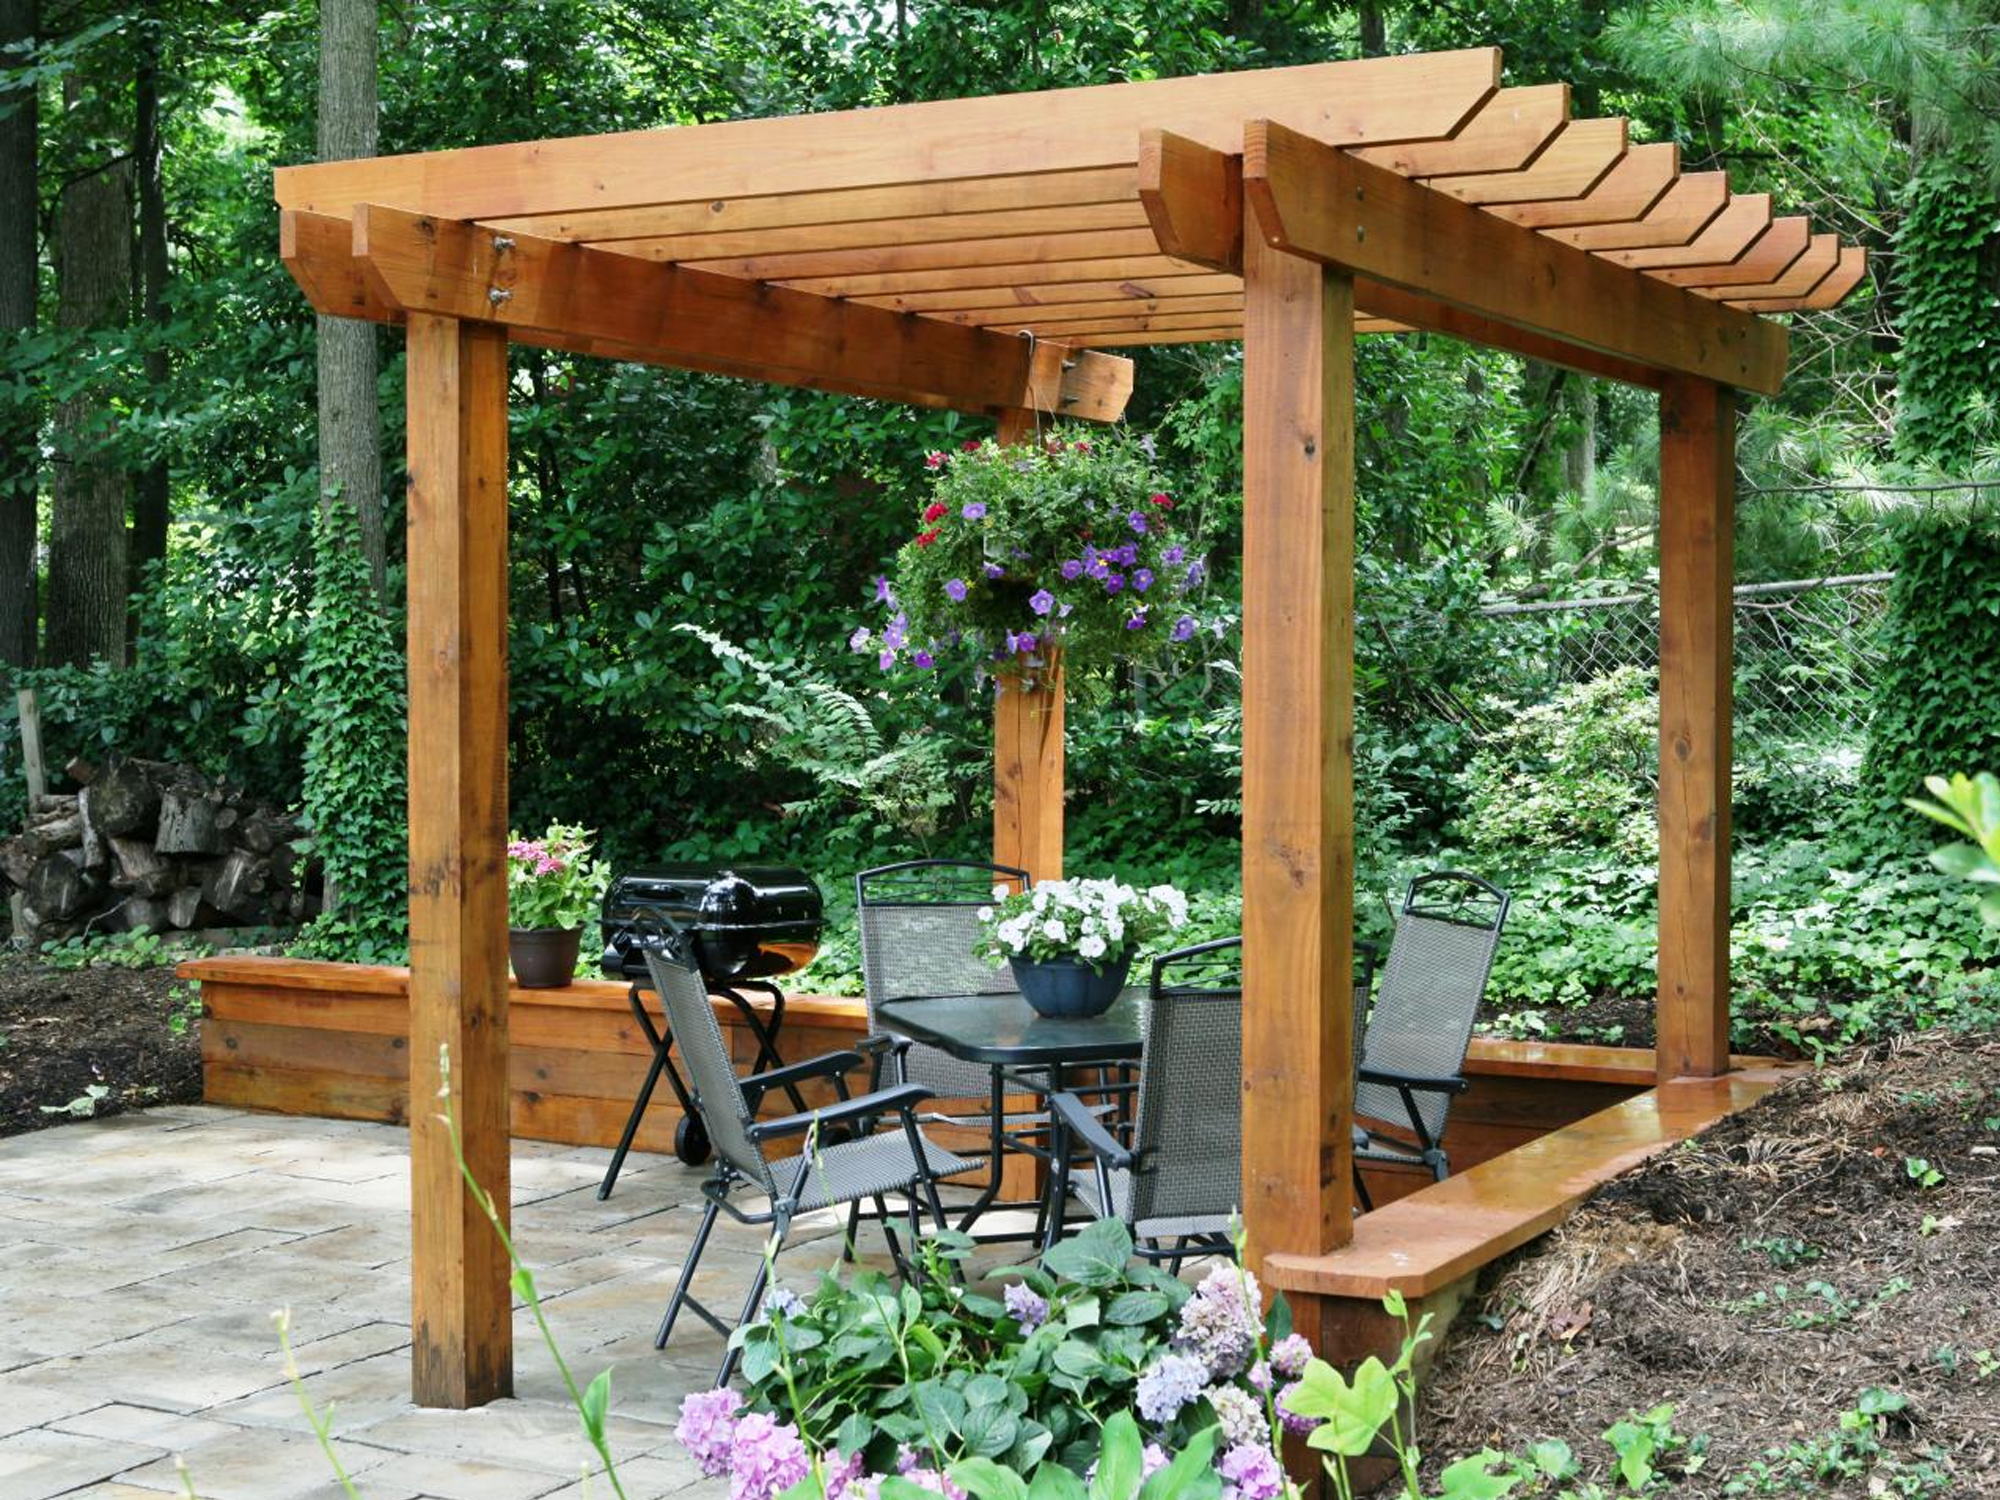 15 free pergola plans you can diy today